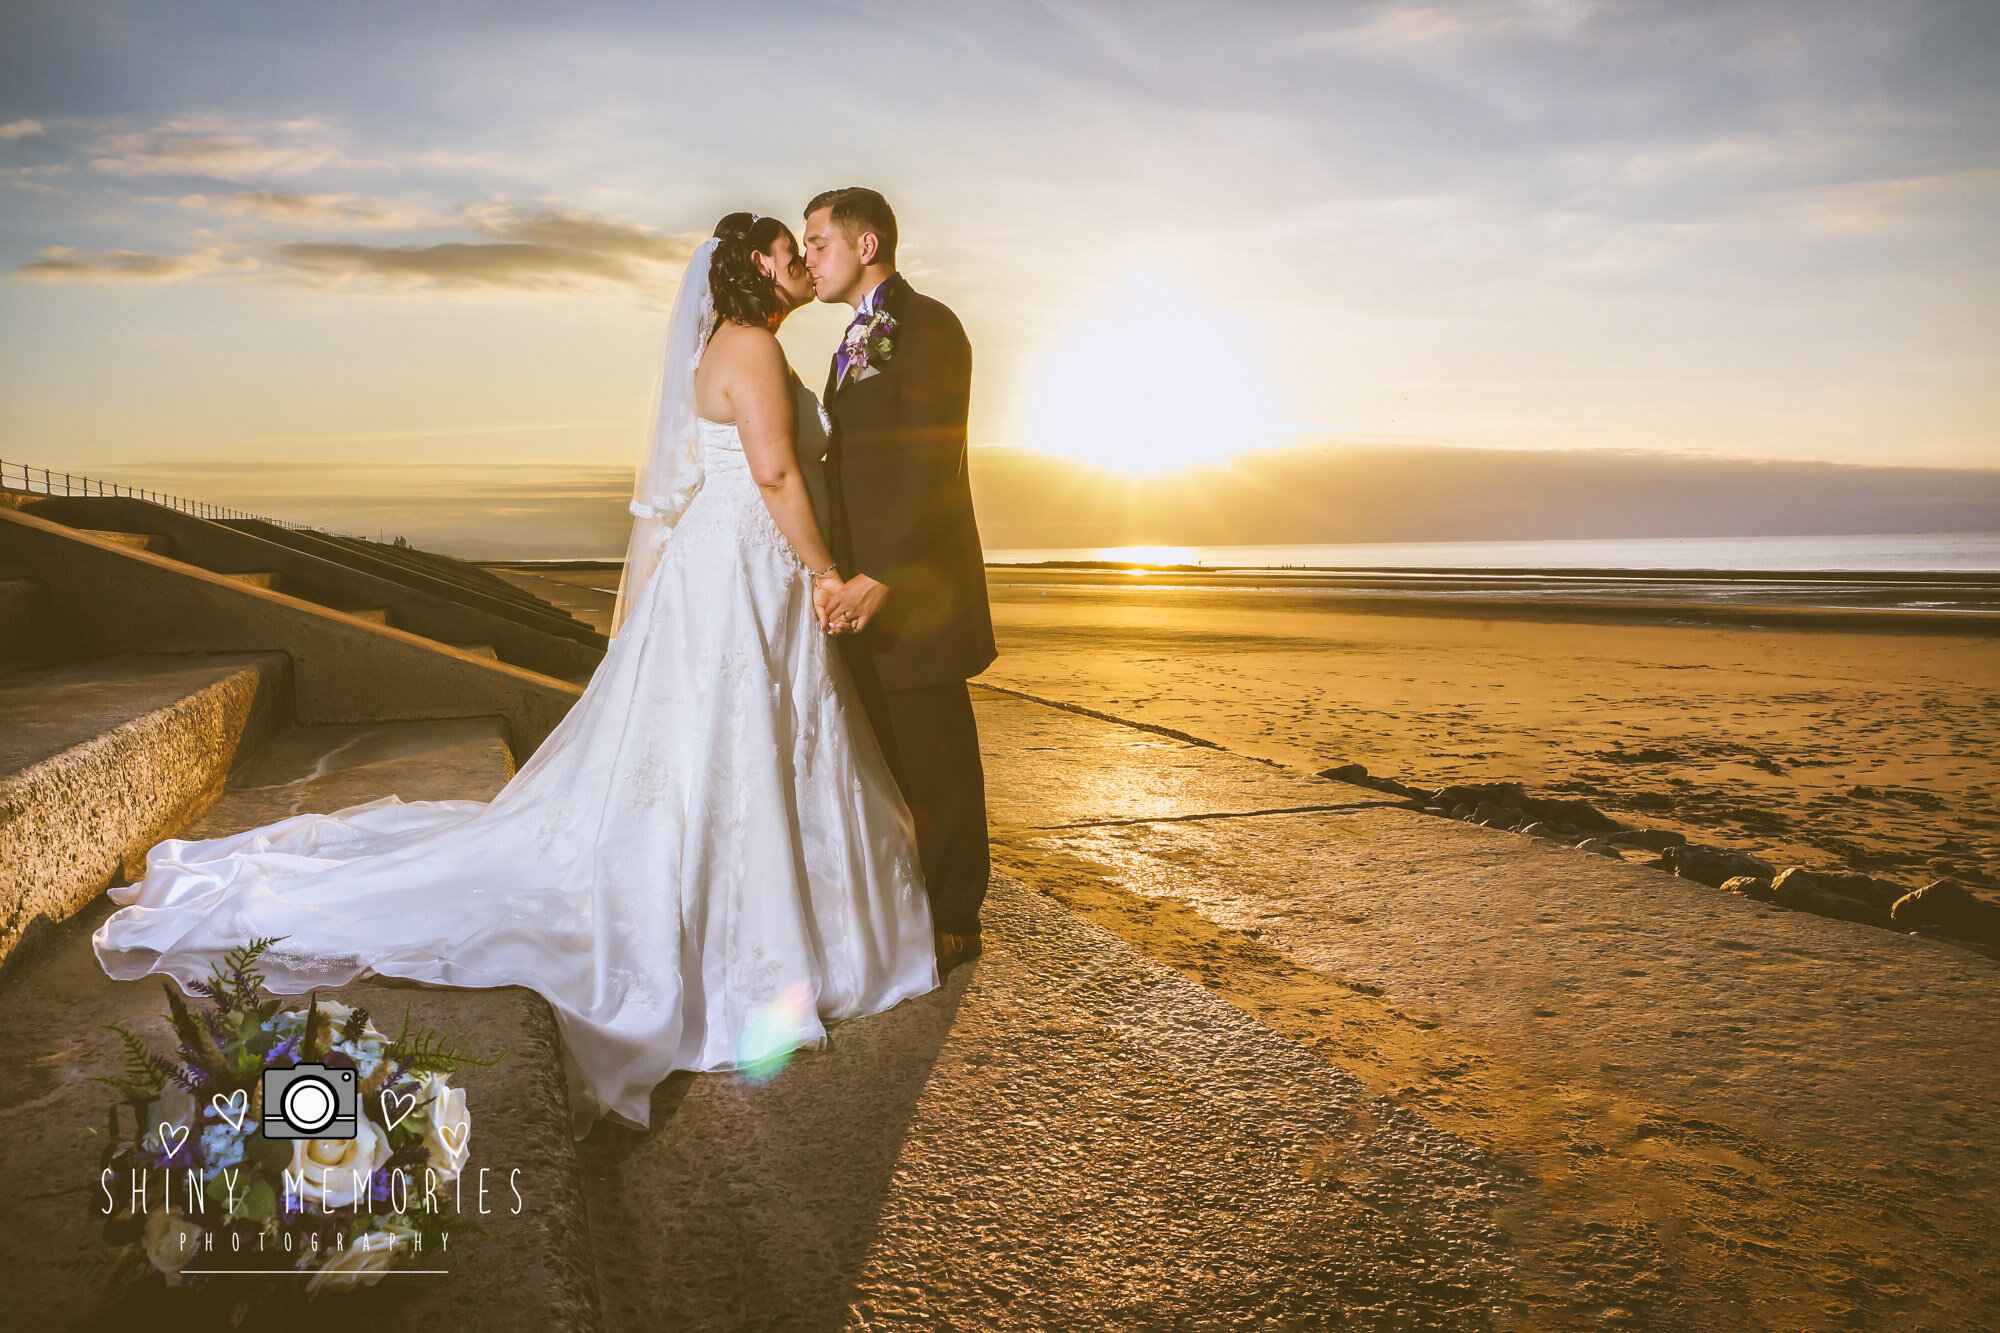 Shiny Memories North Wales Wedding Photographers - The Beaches - Pentre Mawr Country House-9.jpg